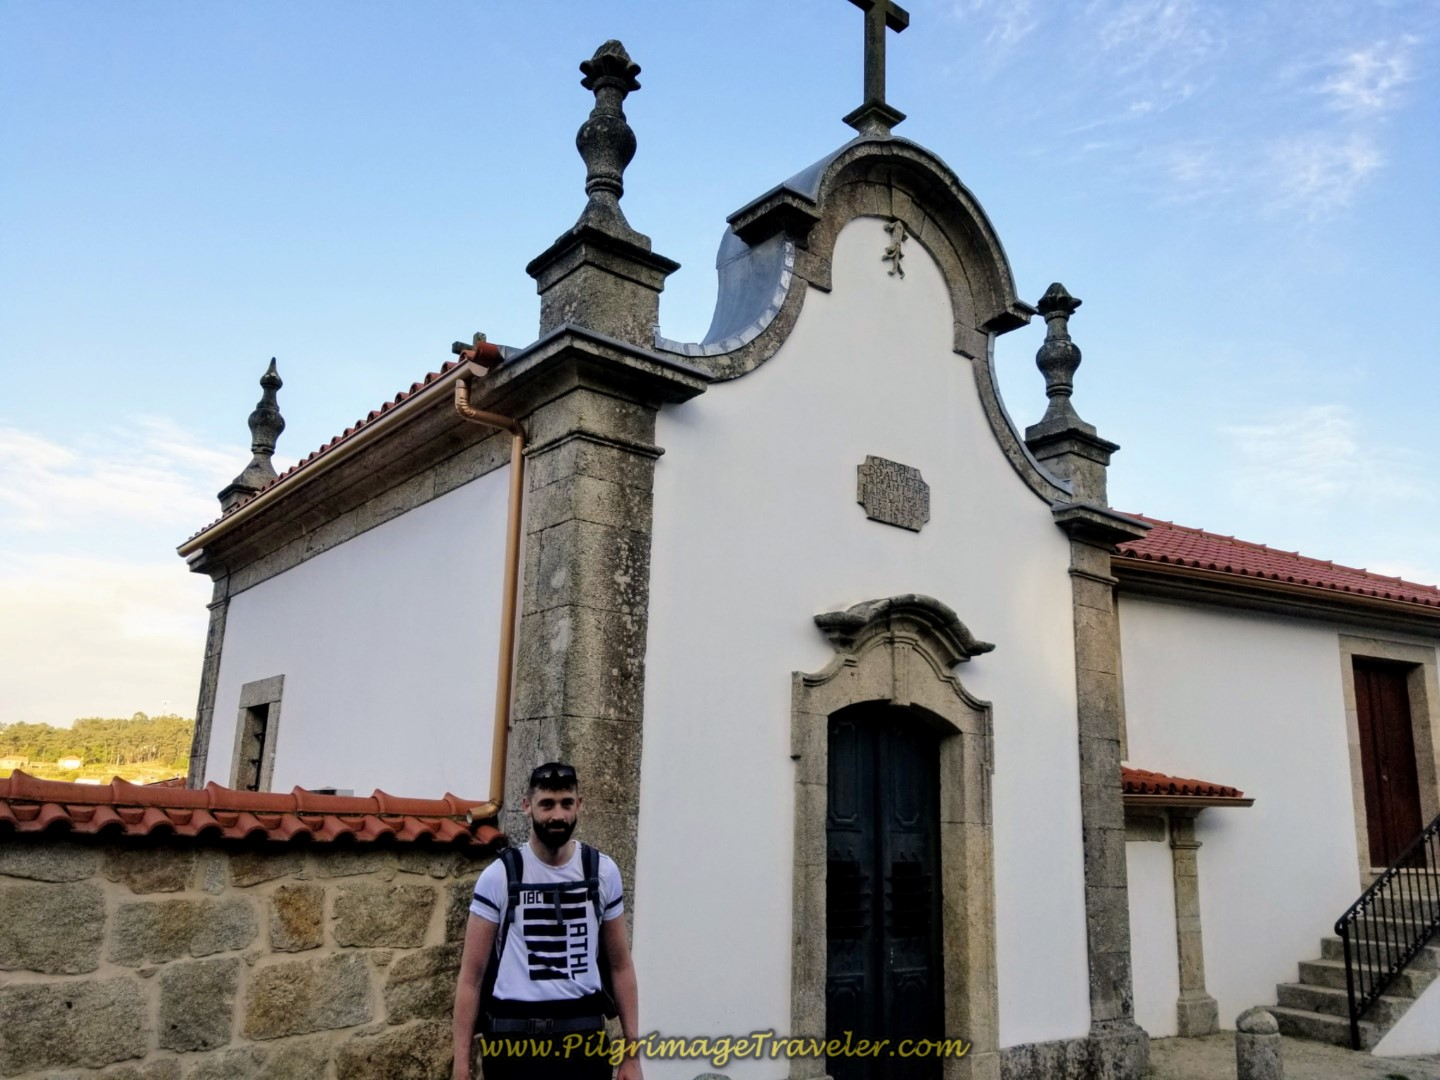 Borut by the Capela in Pecene on day nineteen on the Central Route of the Portuguese Camino